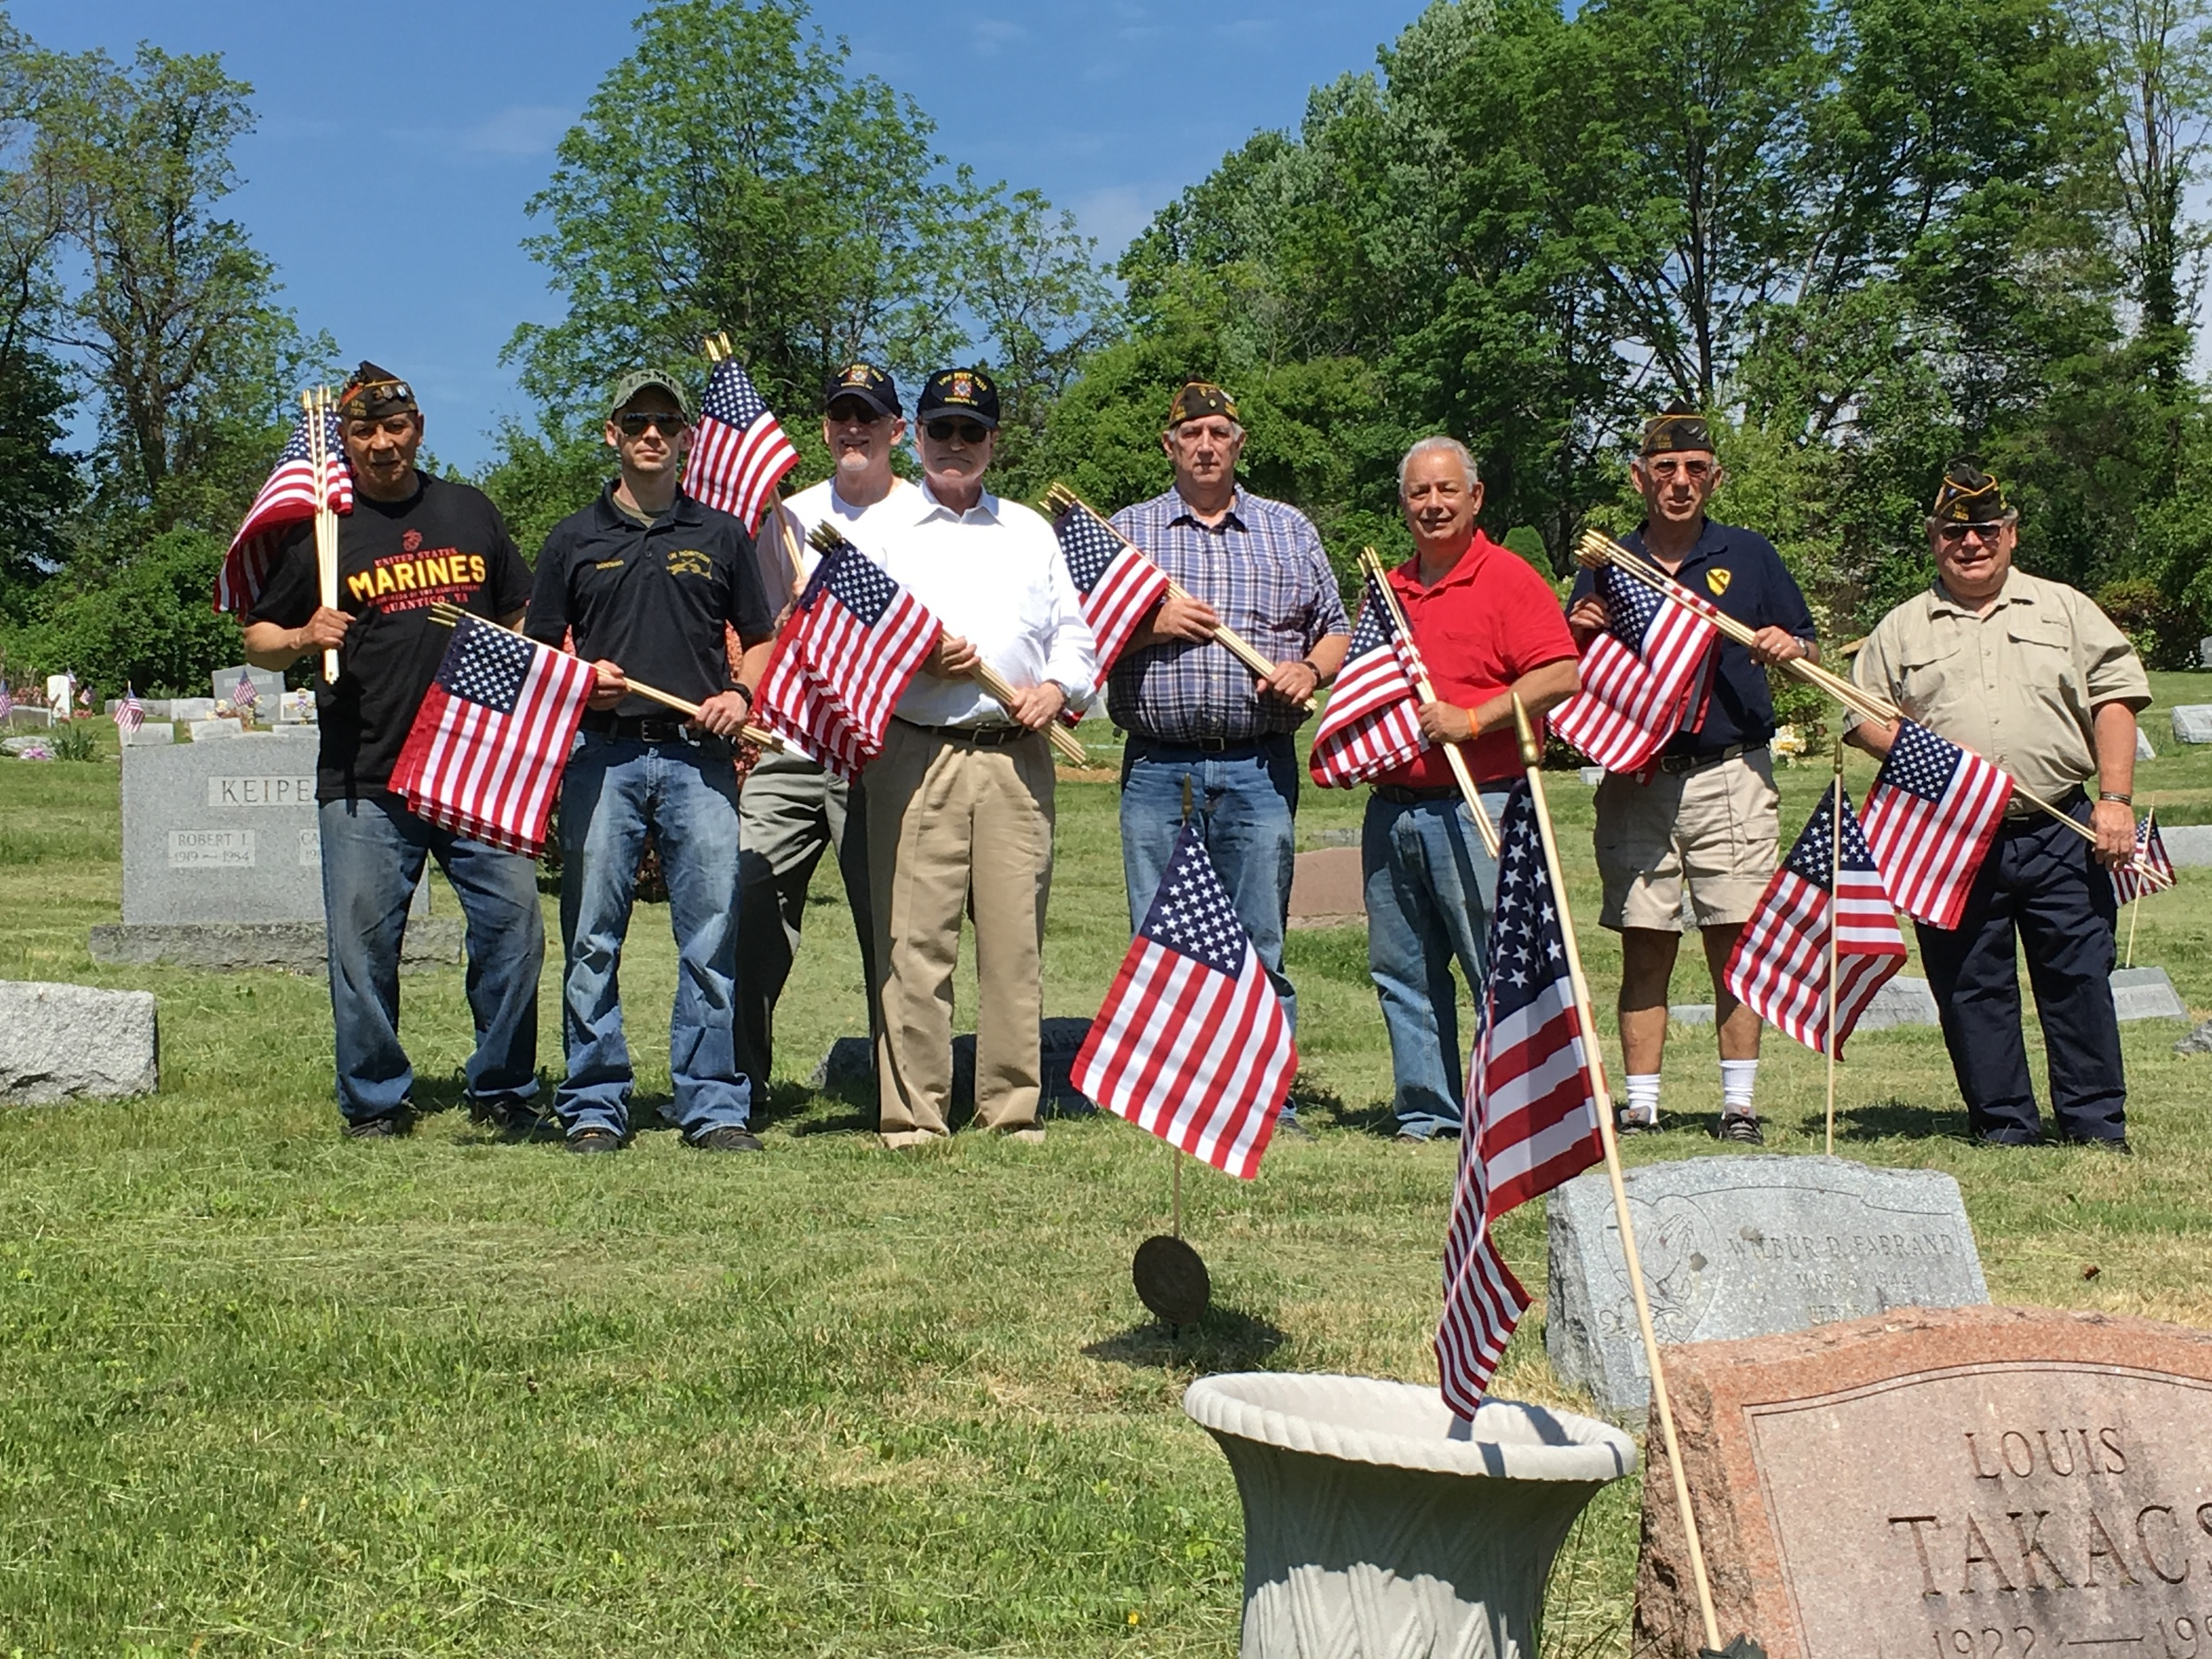 VFW Post 7333 places flags on veteran's graves at six Randolph cemeteries. Participants: Scott Montana - Cmdr, Ted Carman, Bob Brembs, Rich Reck, Dan Gaestel, Bill Menzel, Ken Lareau, Len Labriola, Emerson Crooks, Jack Sassaman